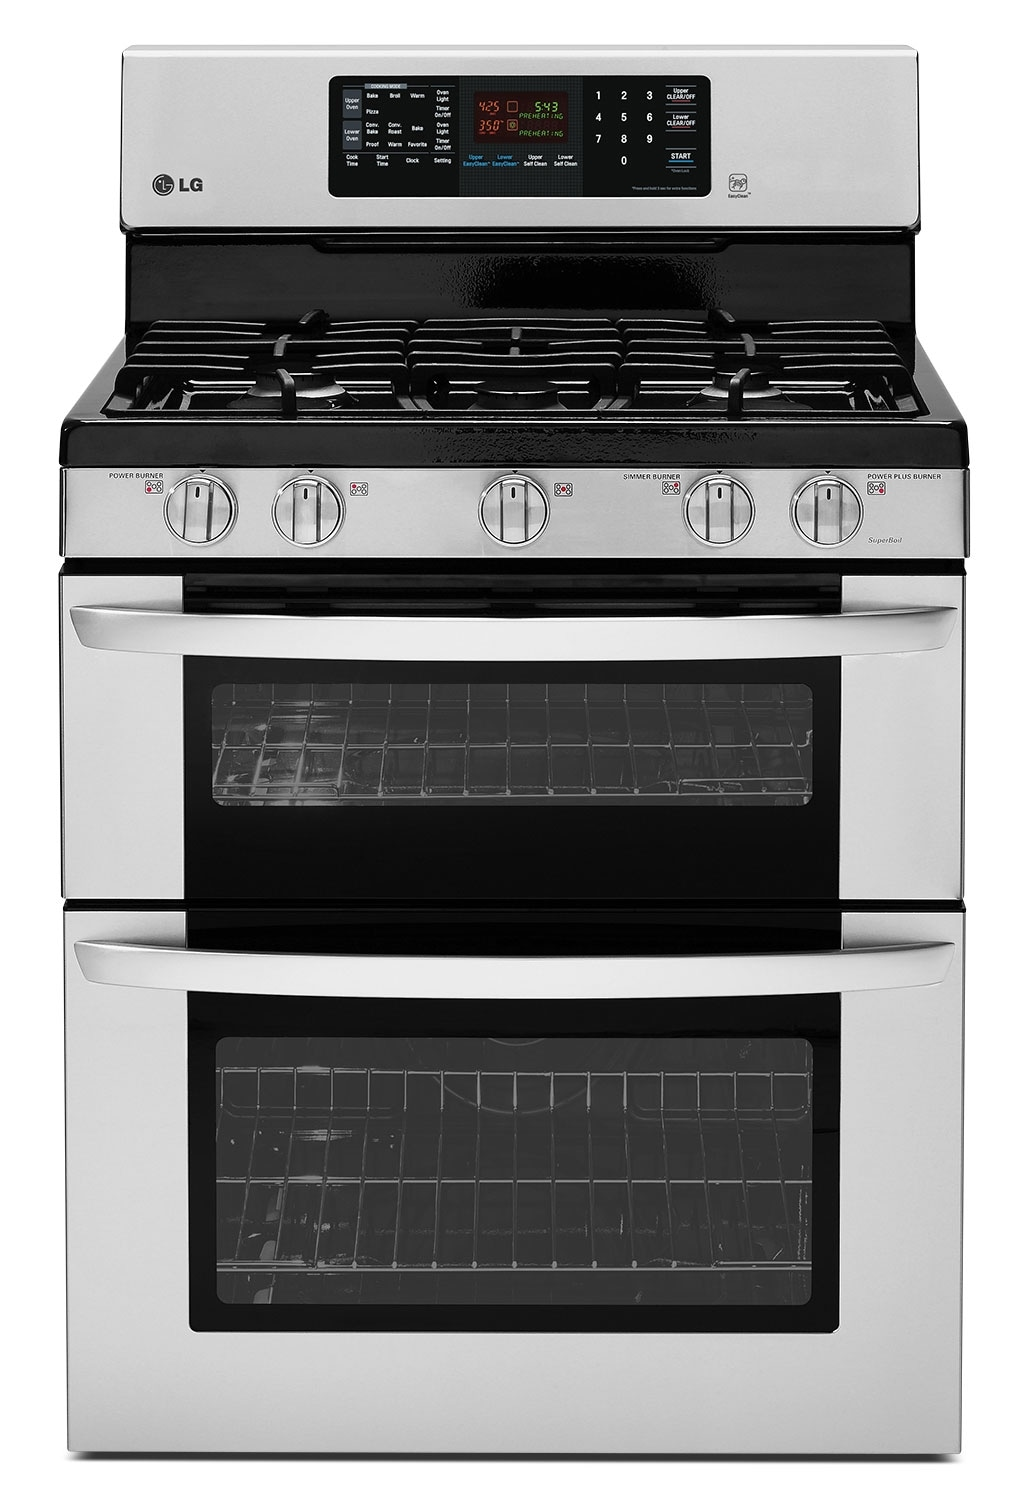 LG 6.9 Cu. Ft. Gas Range with Double Oven – Stainless Steel